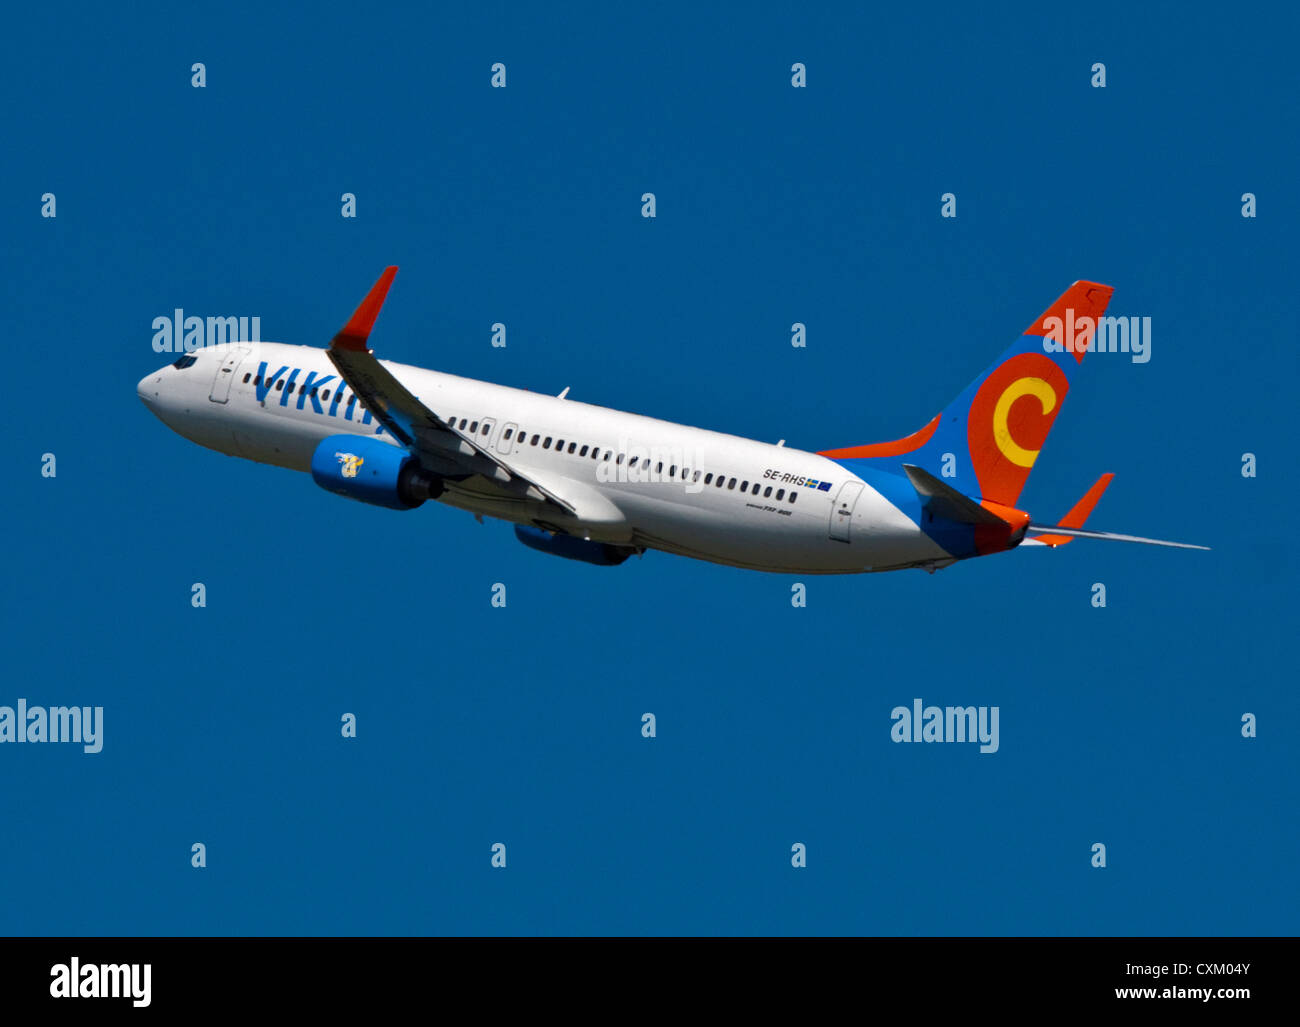 Viking Airlines Boeing 737 Aircraft, Gatwick Airport, Sussex, England - Stock Image